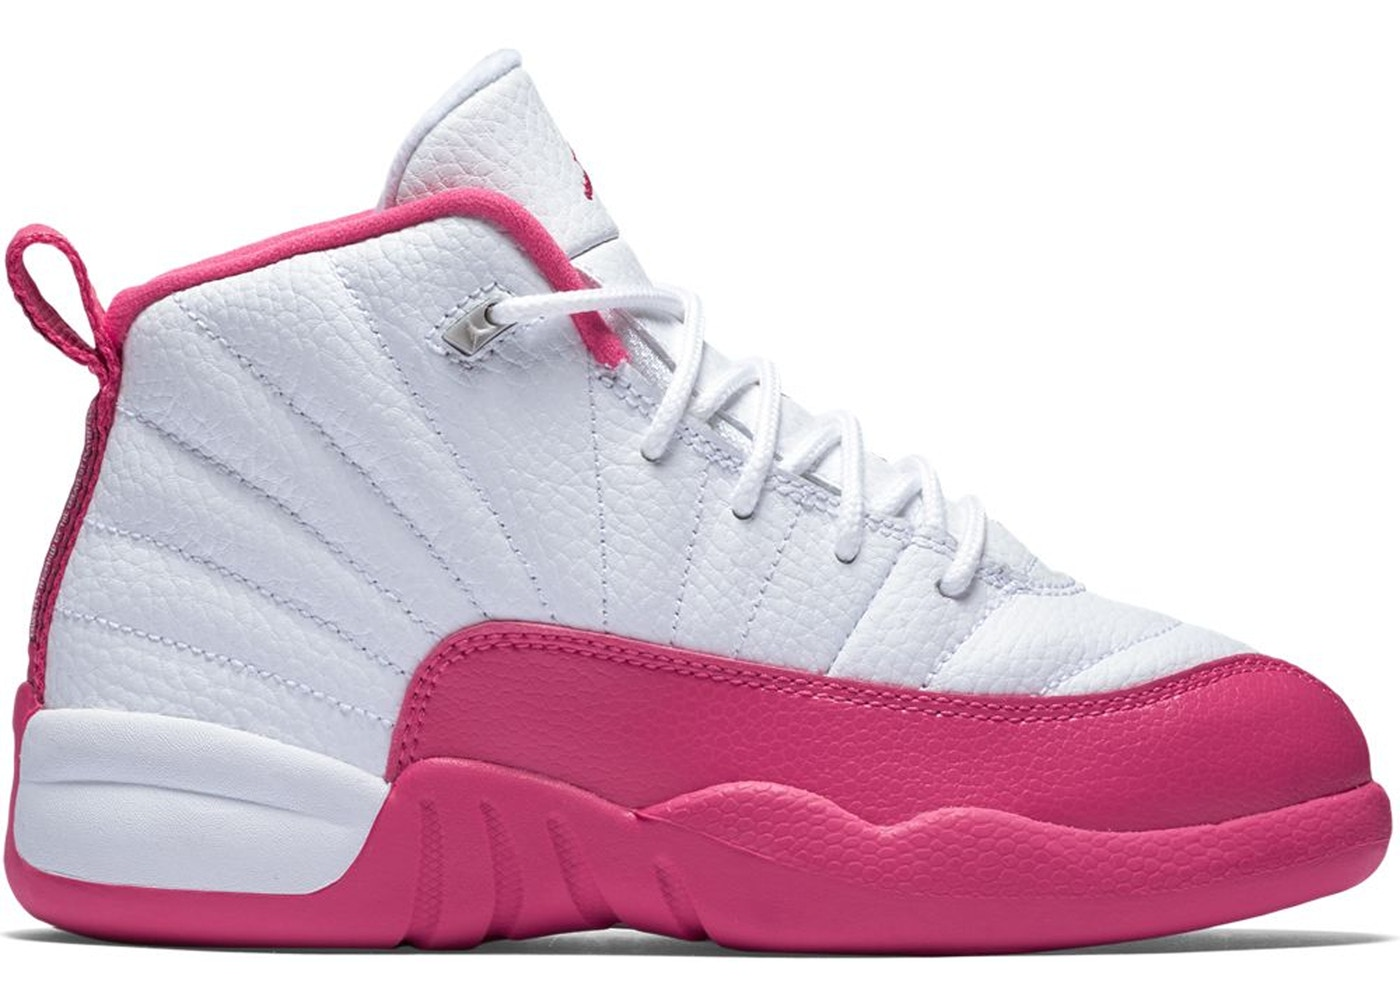 770fd2a8bb3 Sell. or Ask. Size 2. View All Bids. Jordan 12 Retro Dynamic Pink ...